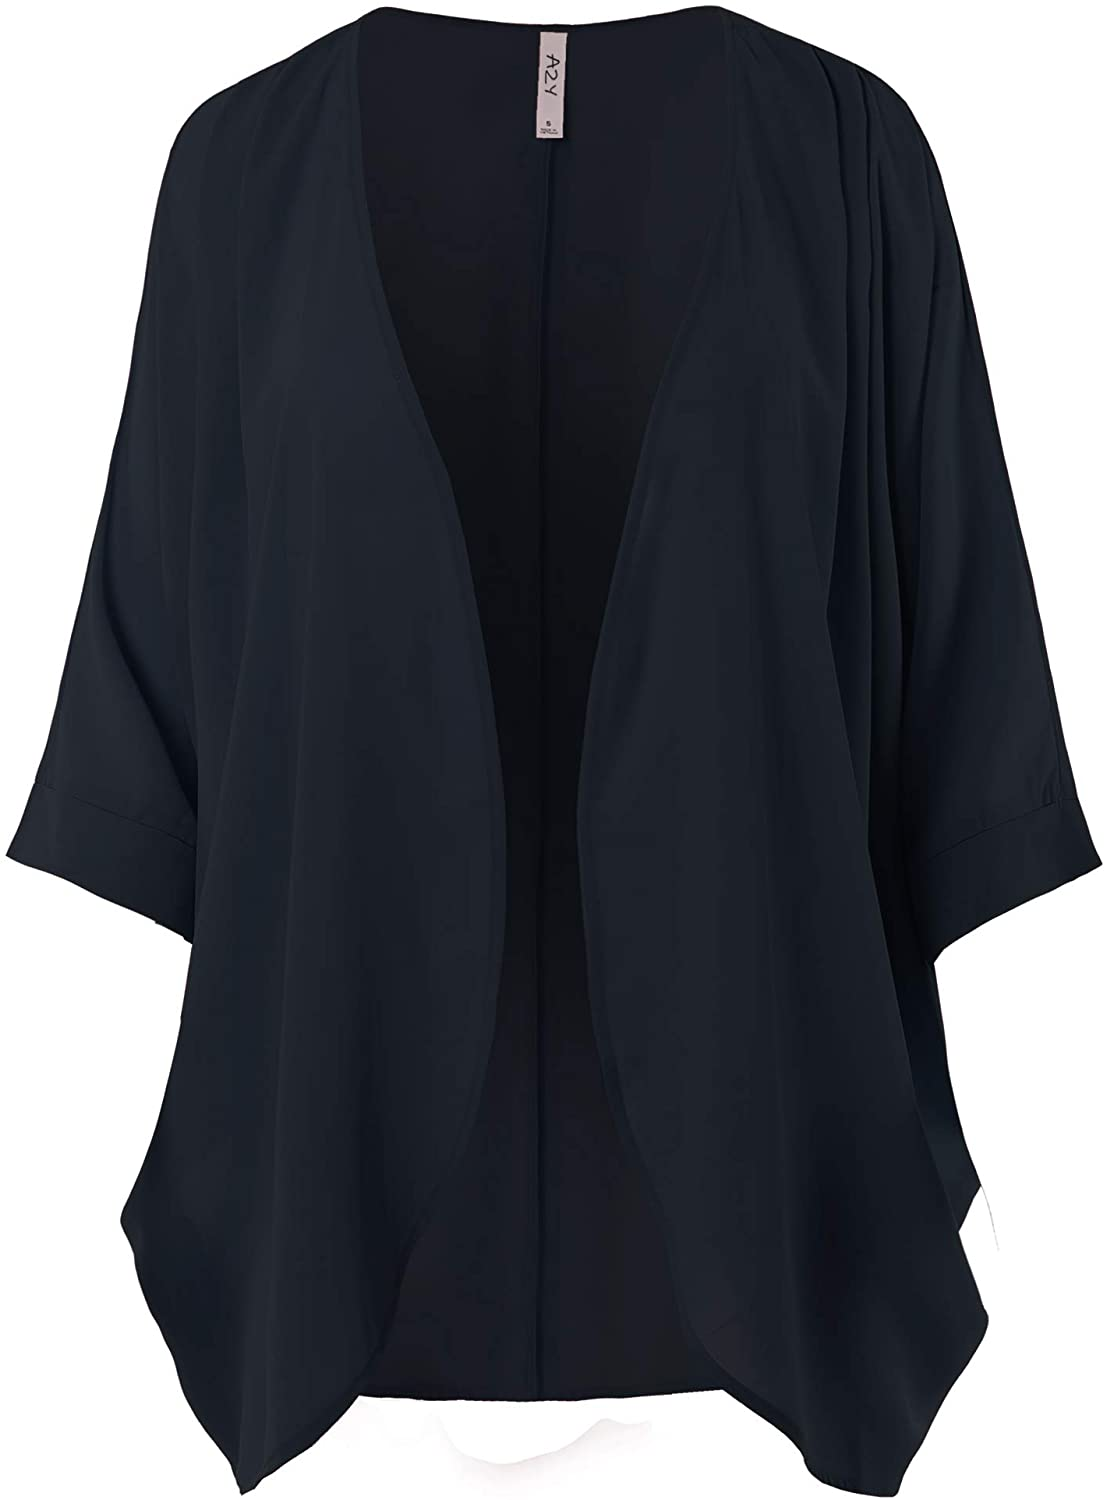 Women's Loose Fit Lightweight Open Front Woven Chiffon Cardigan